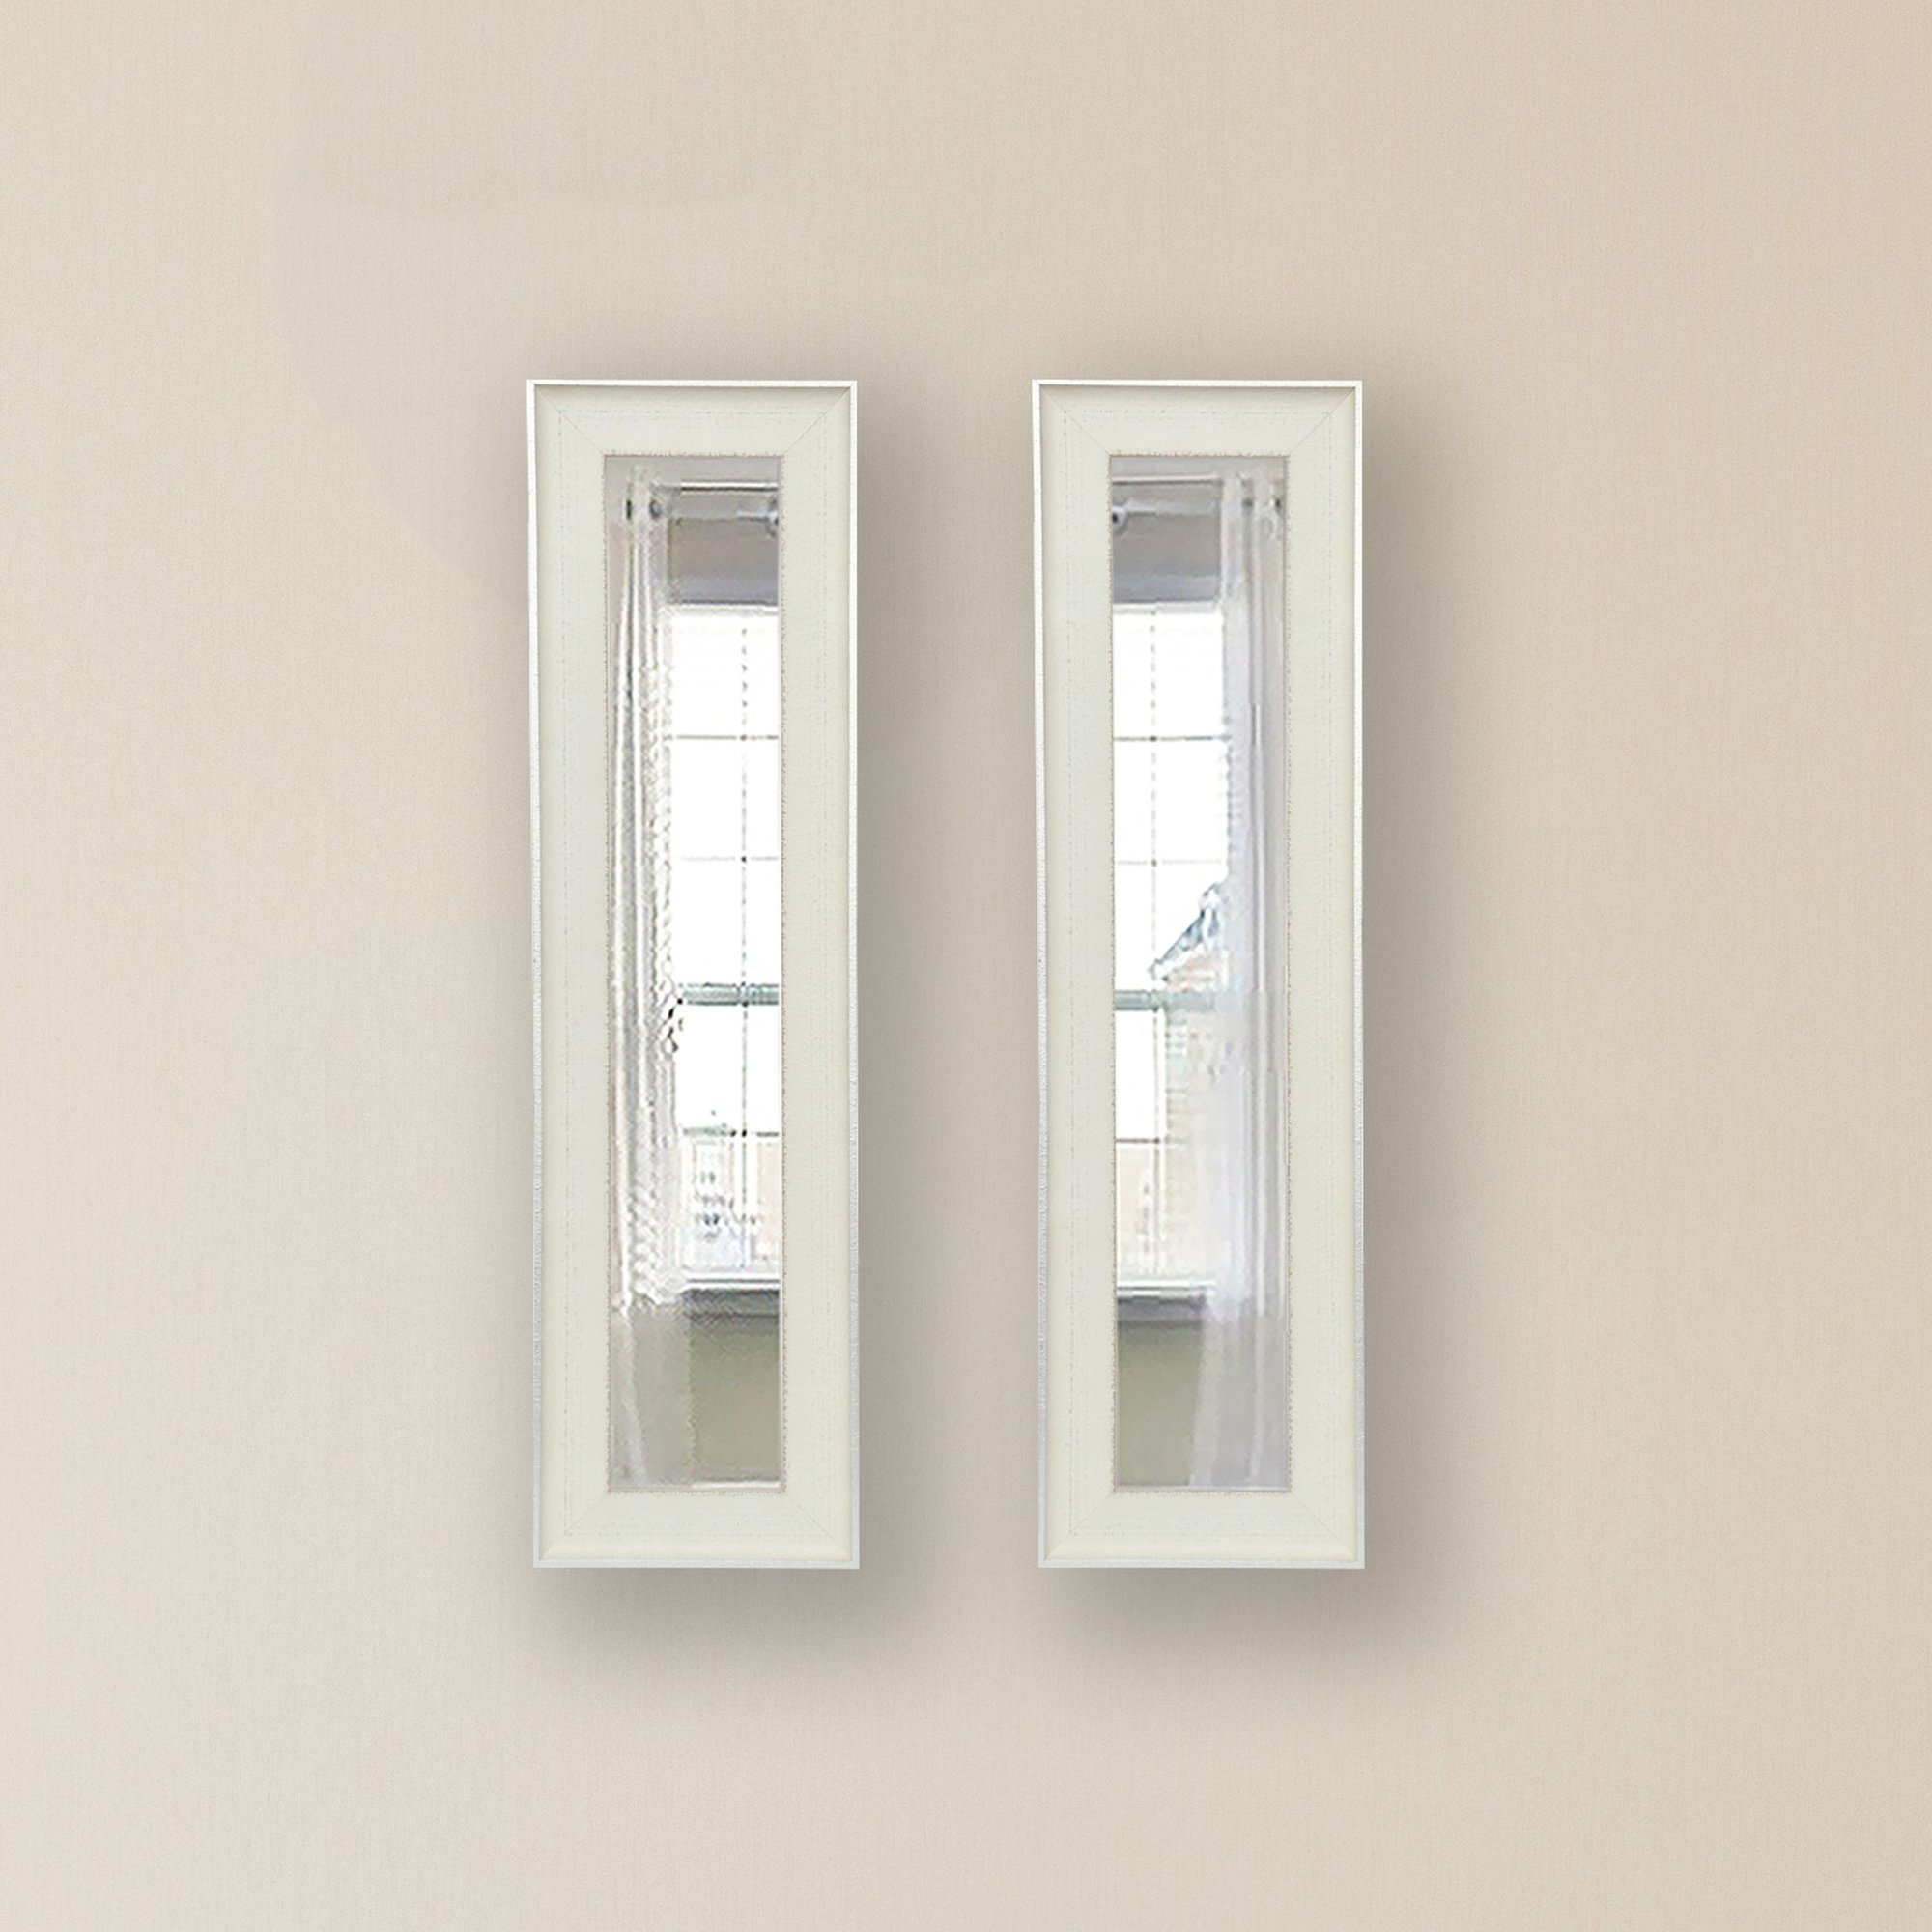 Rayne Mirrors Molly Dawn Vintage White Mirror Panels Reviews With Regard To Vintage White Mirror (Image 6 of 15)